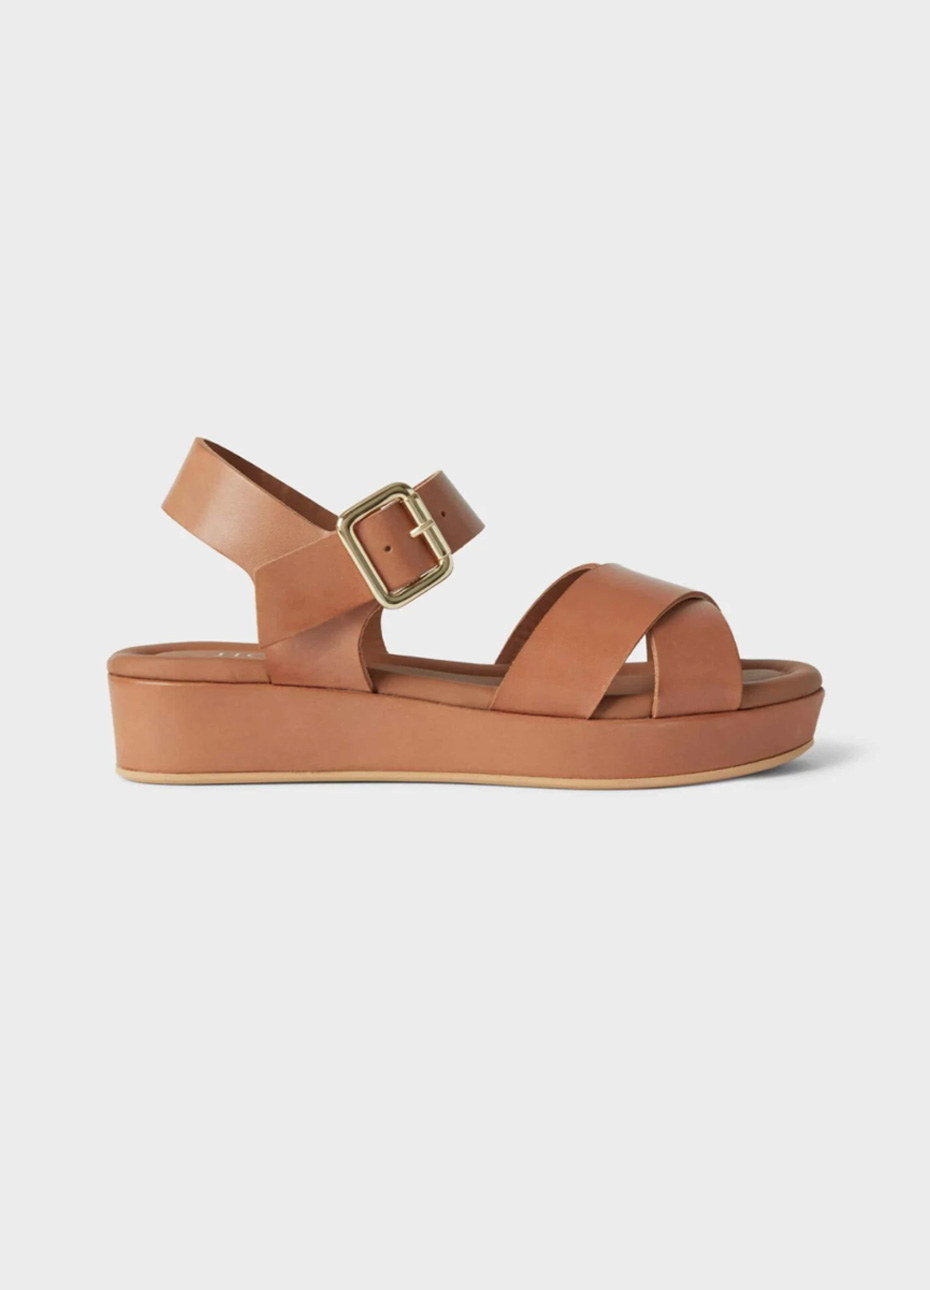 Brown leather flatform sandal from Hobbs.